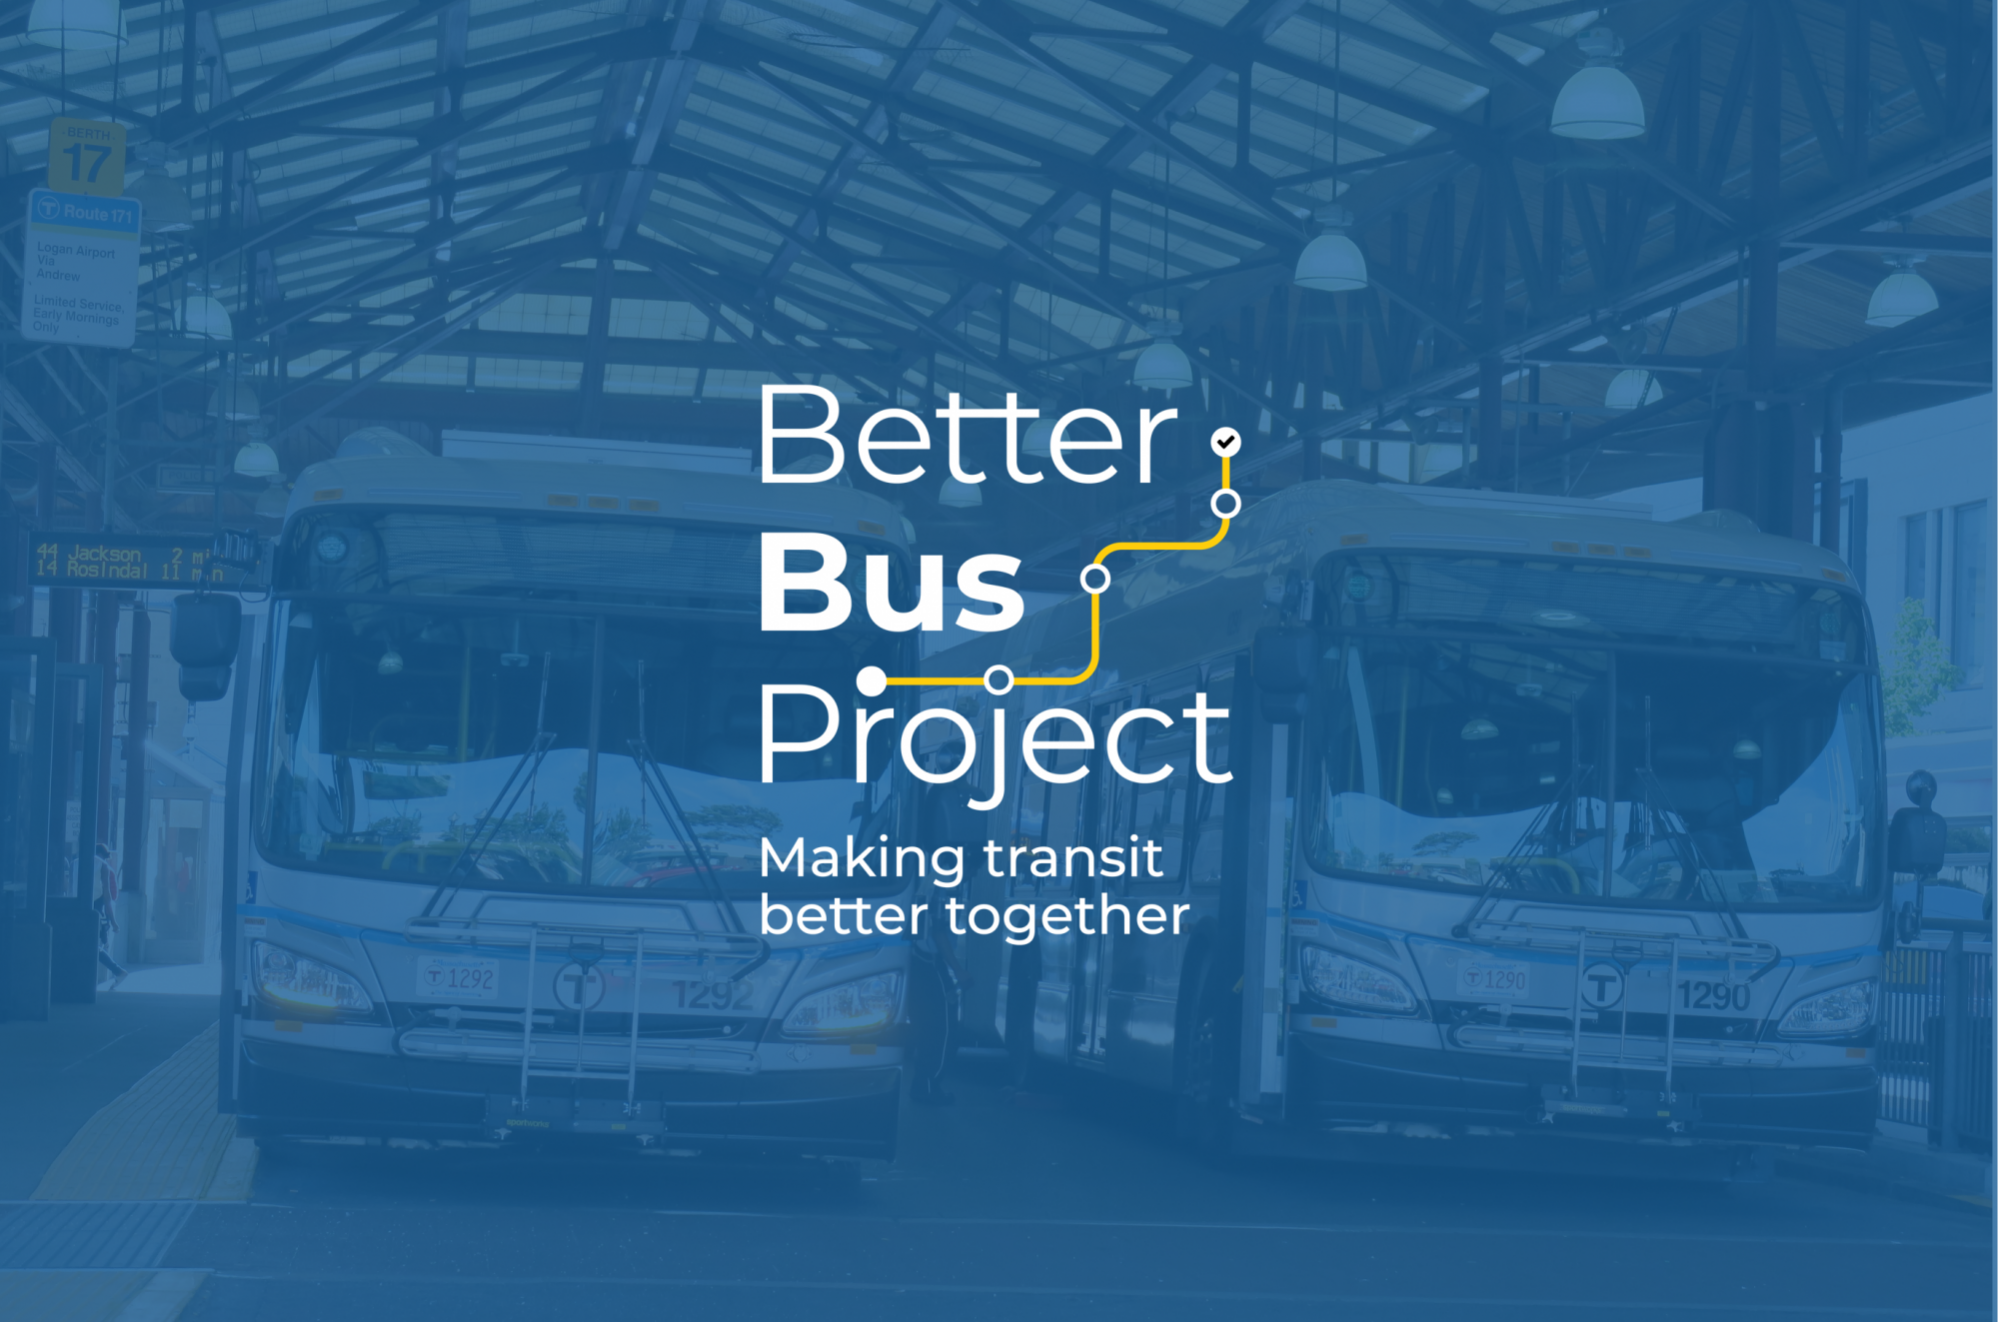 Better Bus Project: Making transit better together